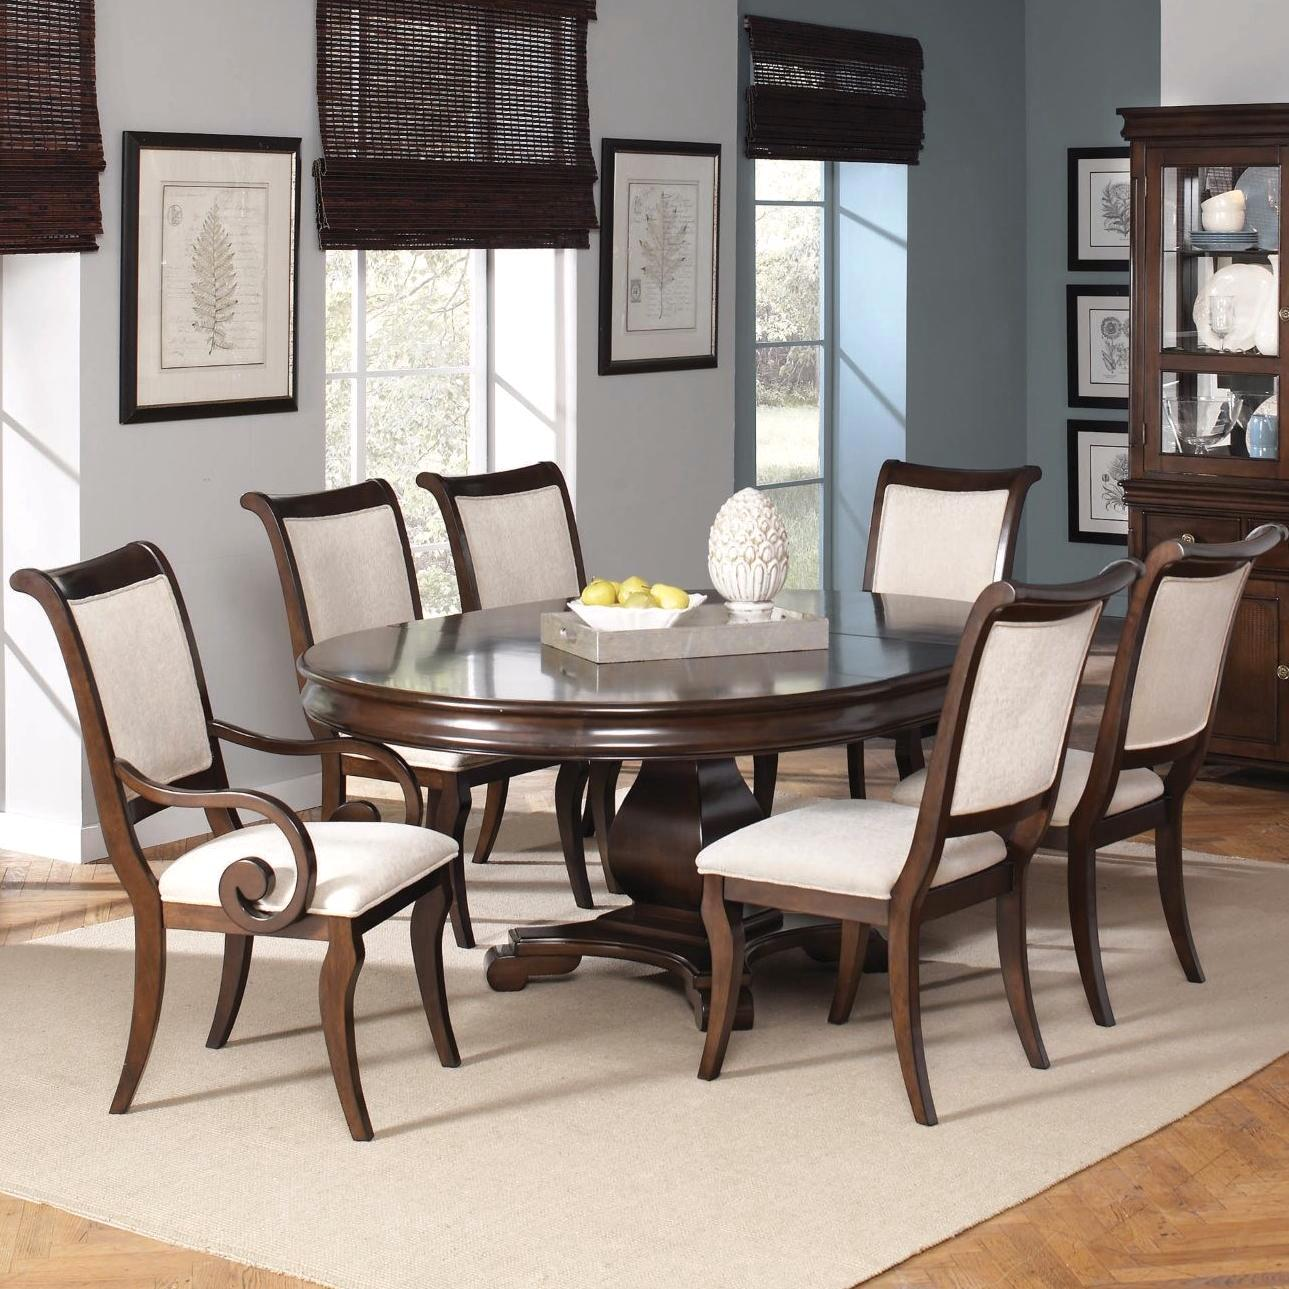 Harris Dark Cherry Finish Dining Room Furniture Set